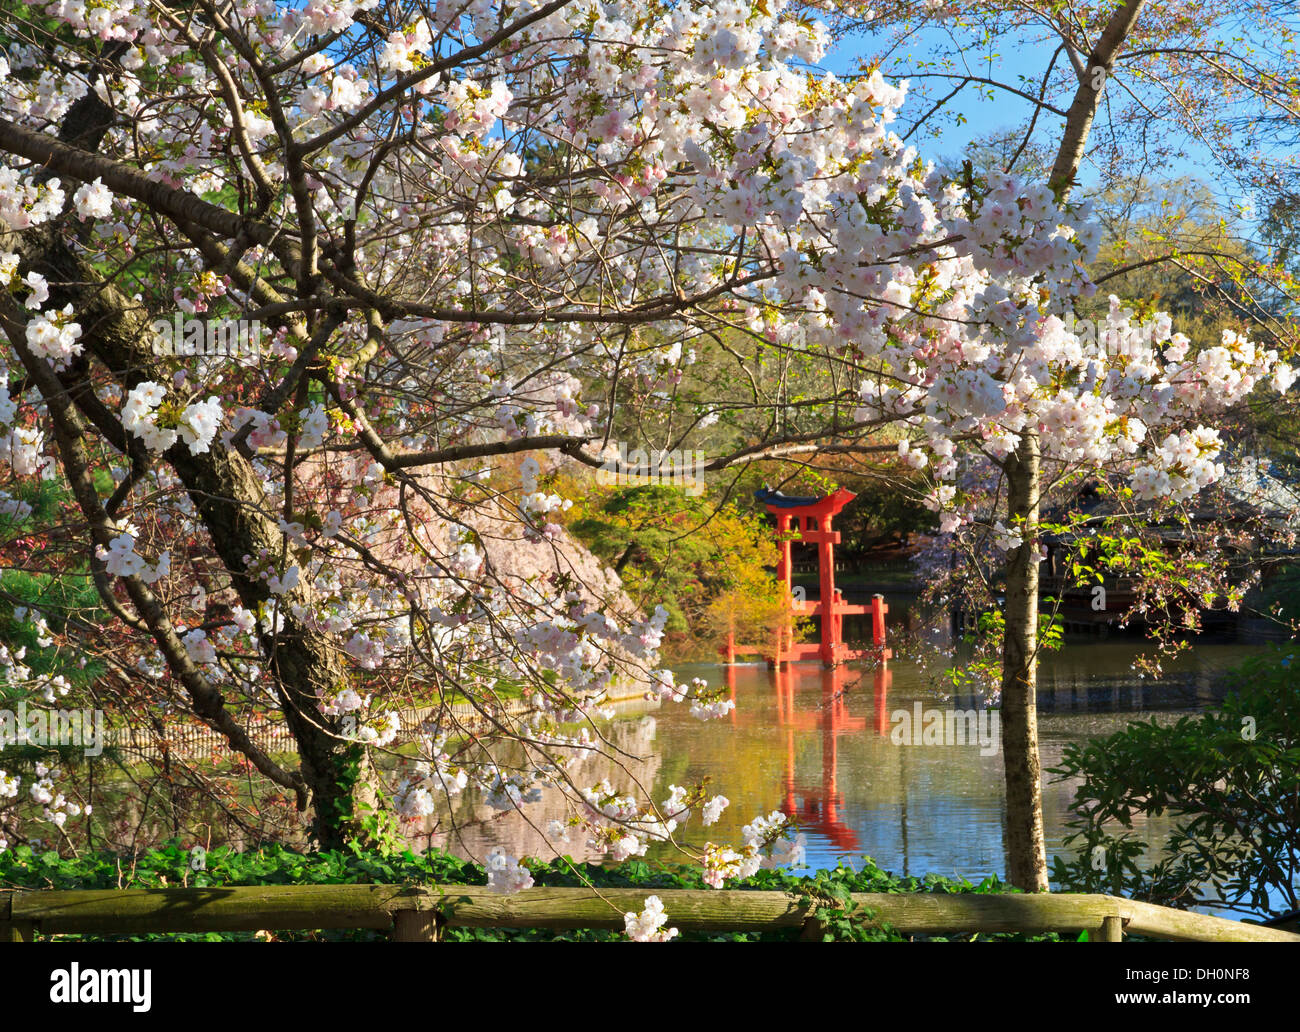 Shinto Shrine And Cherry Blossoms At The Japanese Hill And Pond Garden At  The Brooklyn Botanic Gardens On A Sunny Spring Day